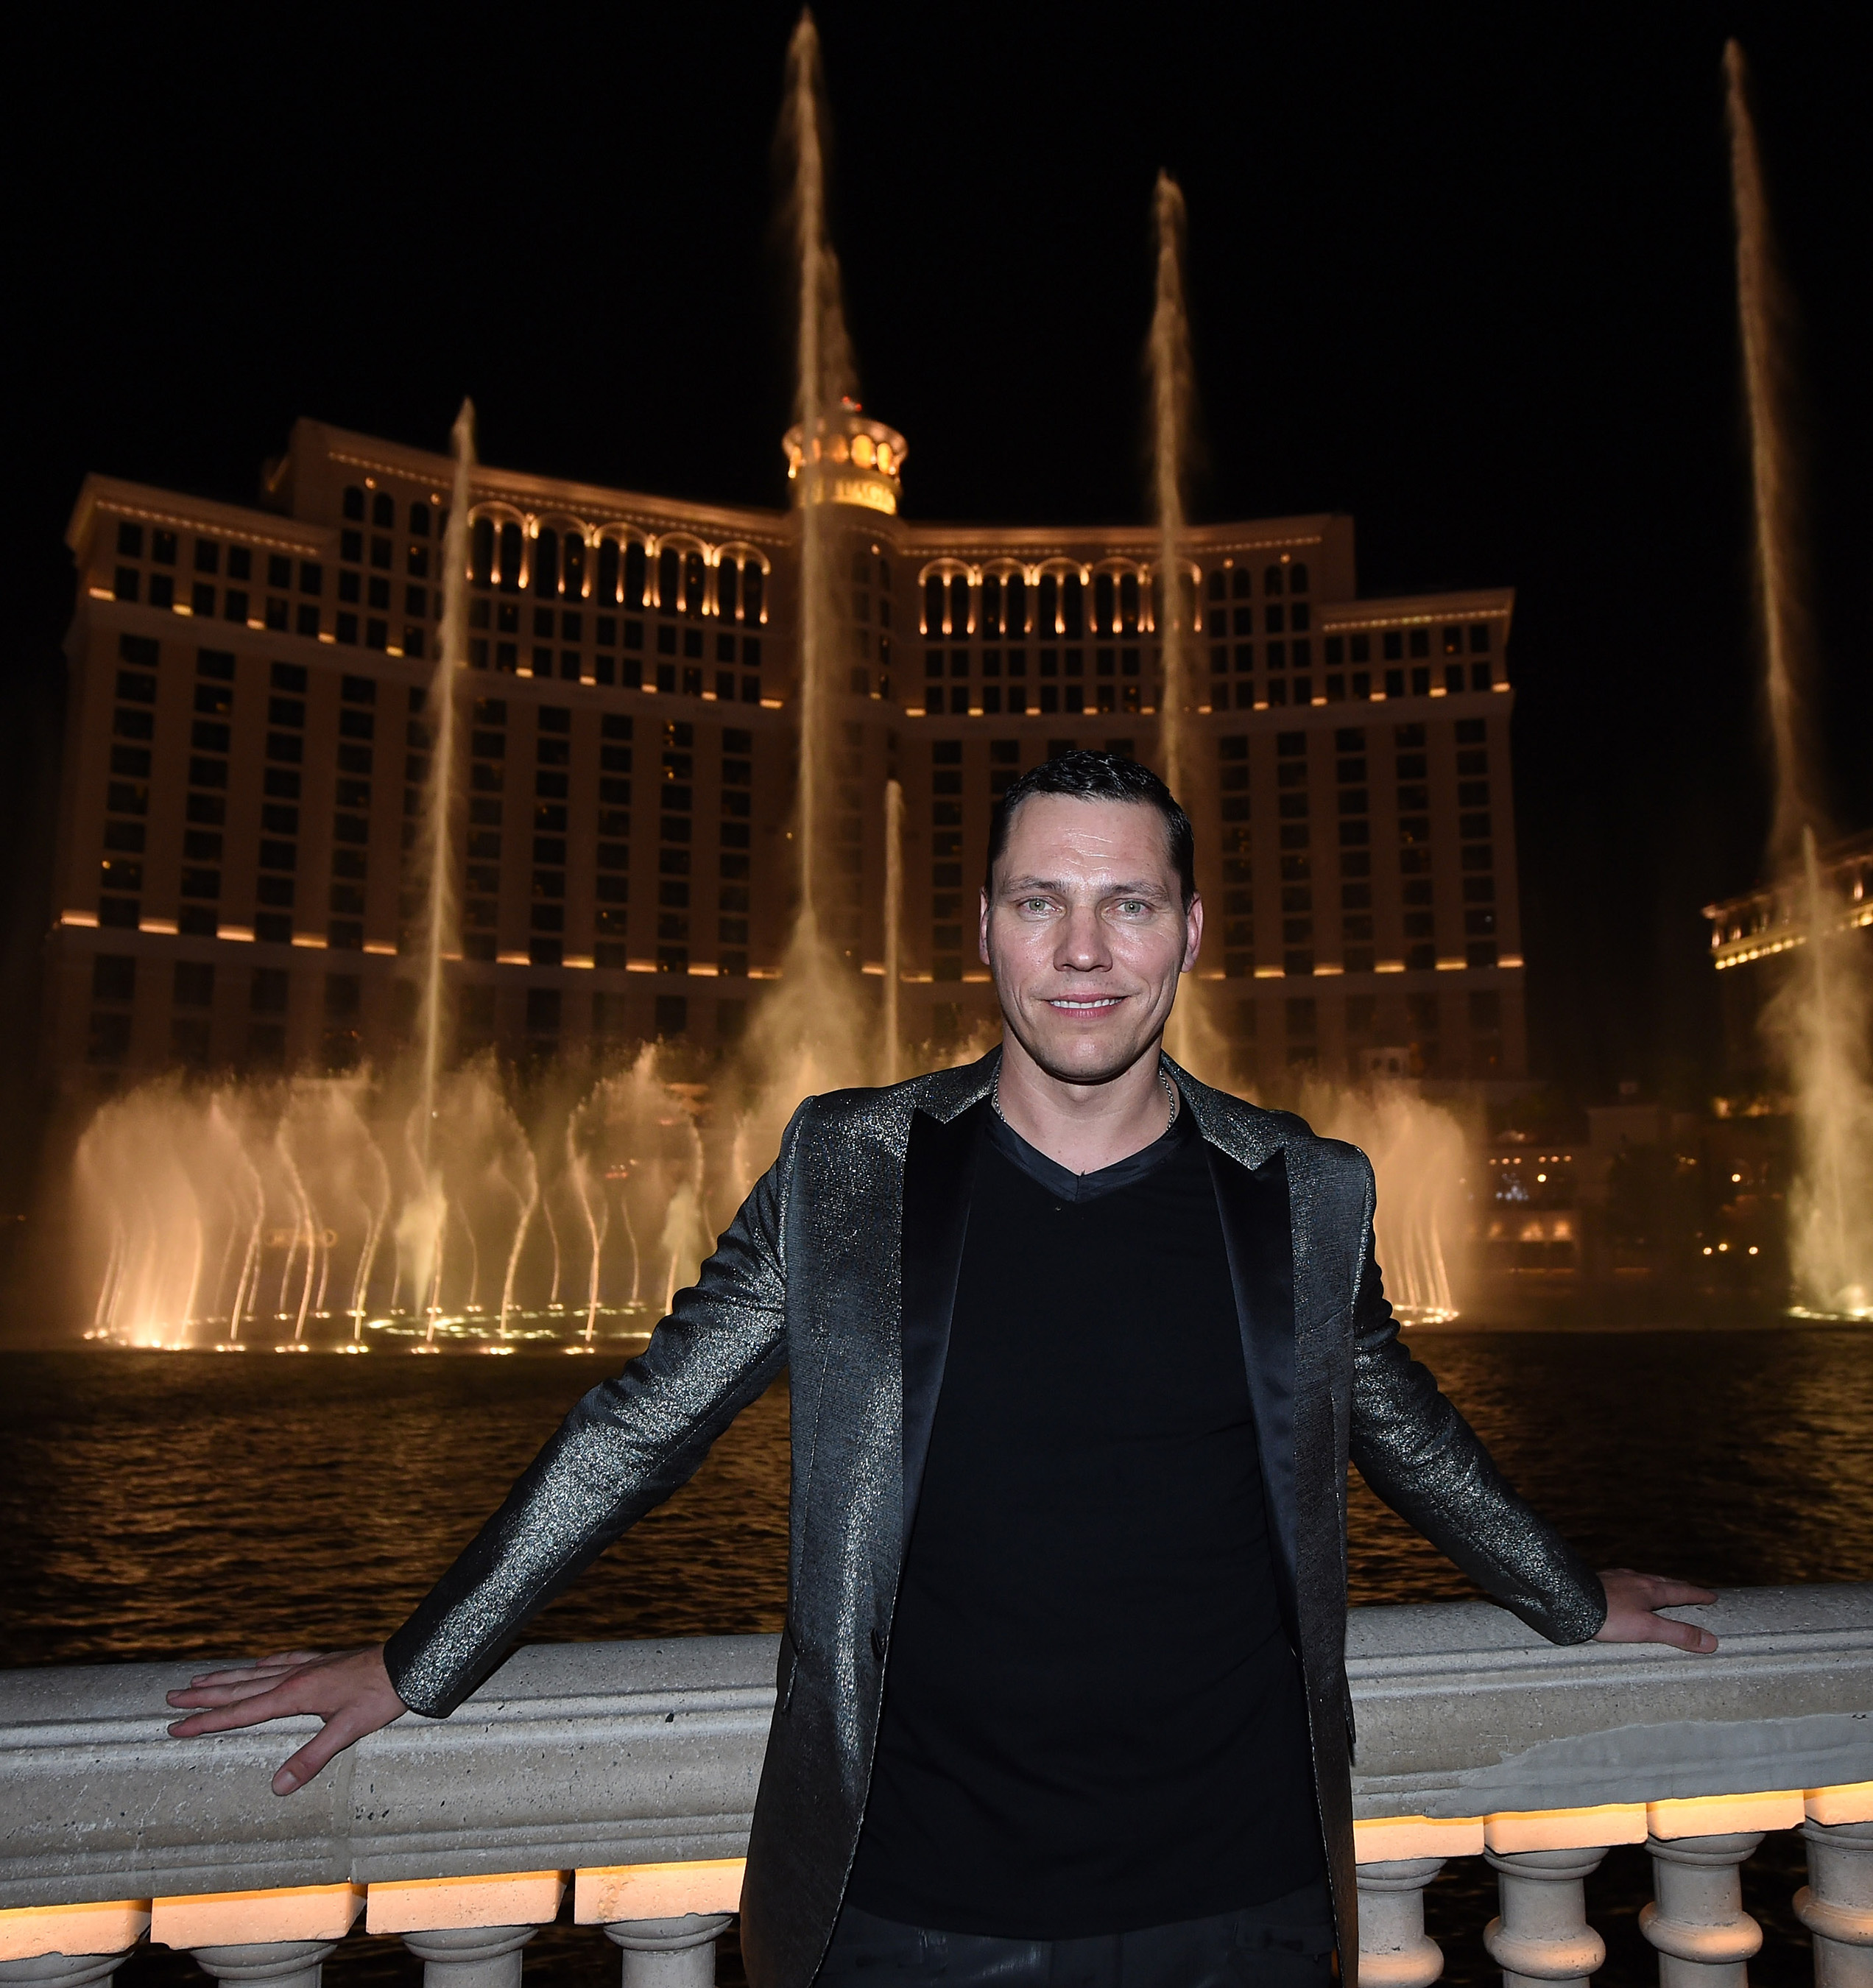 http://www.multivu.com/players/English/7317051-fountains-of-bellagio-las-vegas-dance-to-hits-by-dj-producer-tiesto/gallery/image/23b2e1d9-48a4-476e-a329-f87806dfe703.HR.jpg